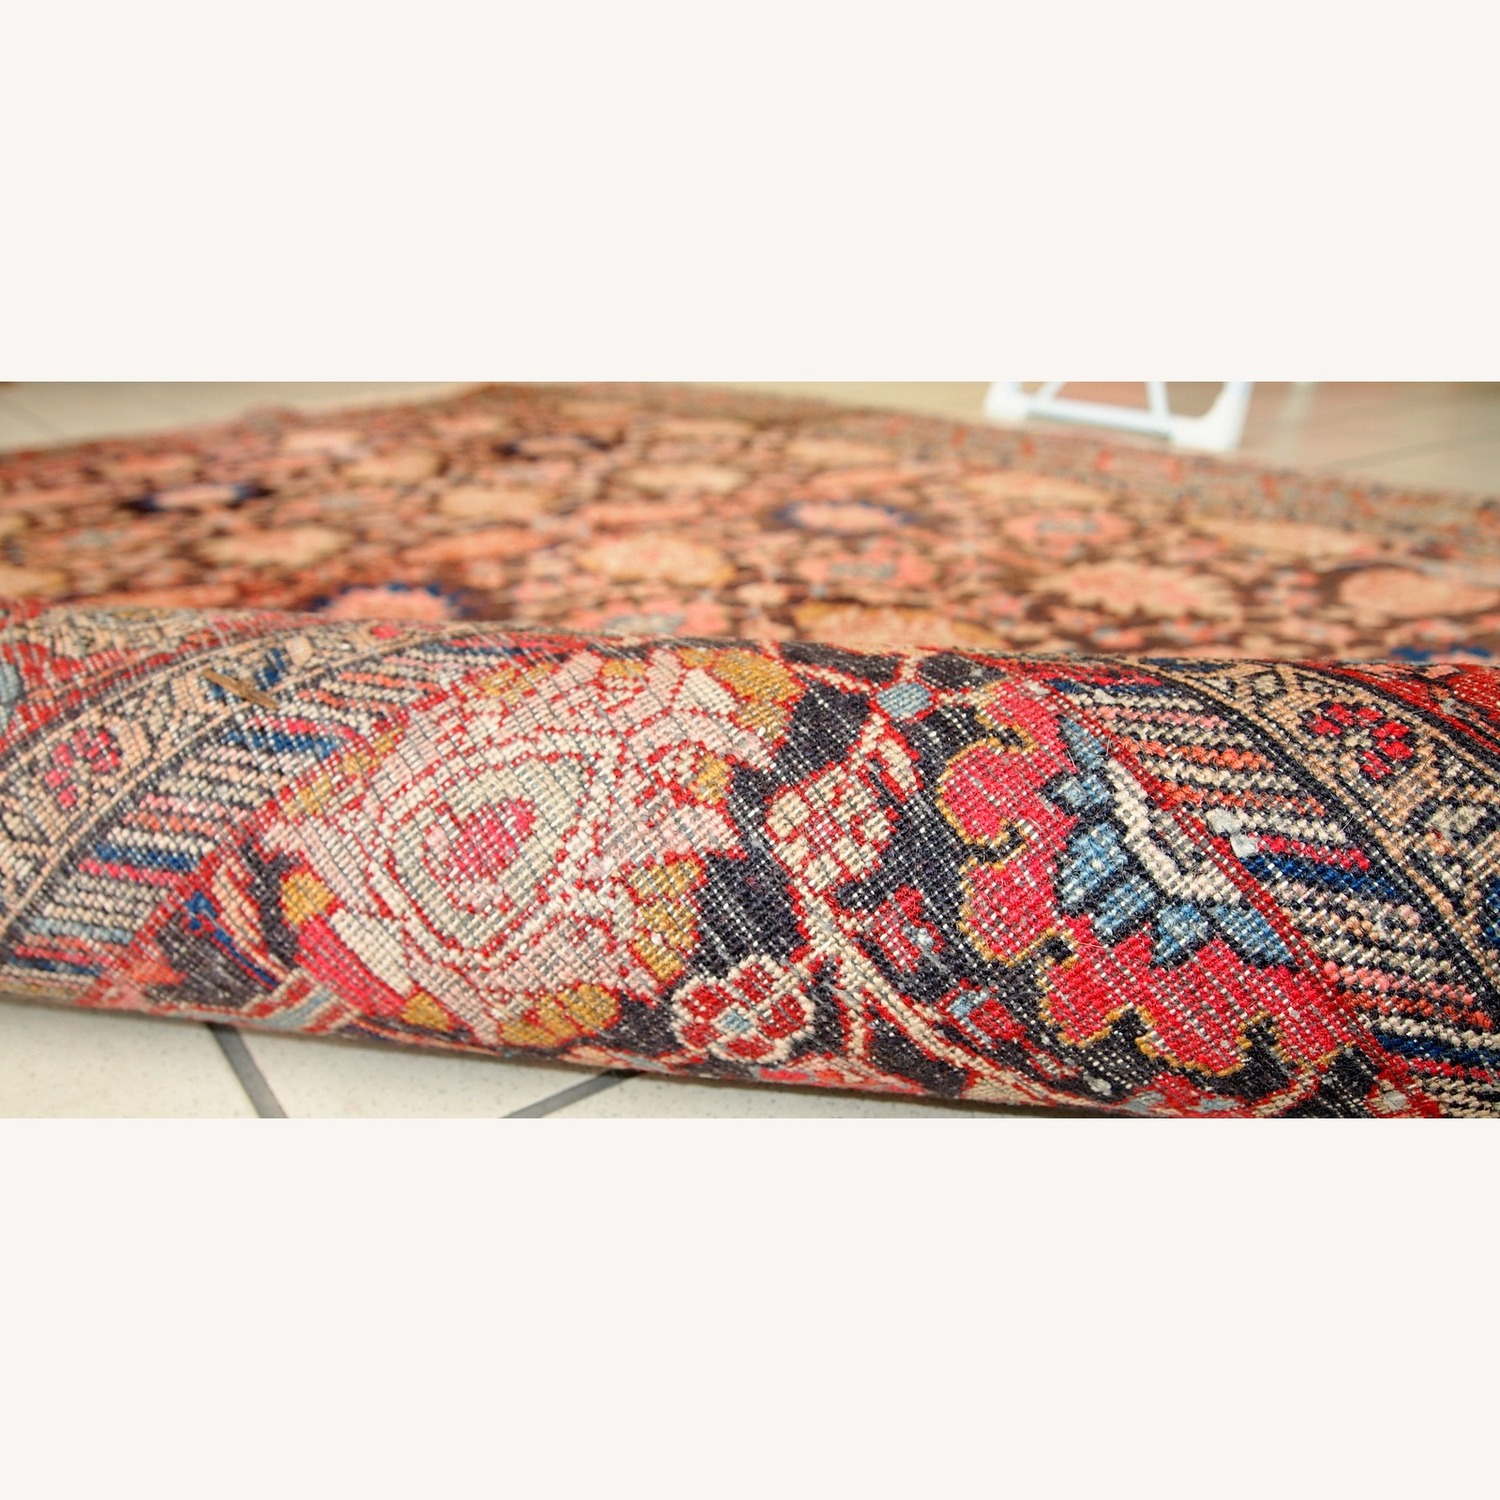 Handmade Antique Persian Bidjar Rug - image-2